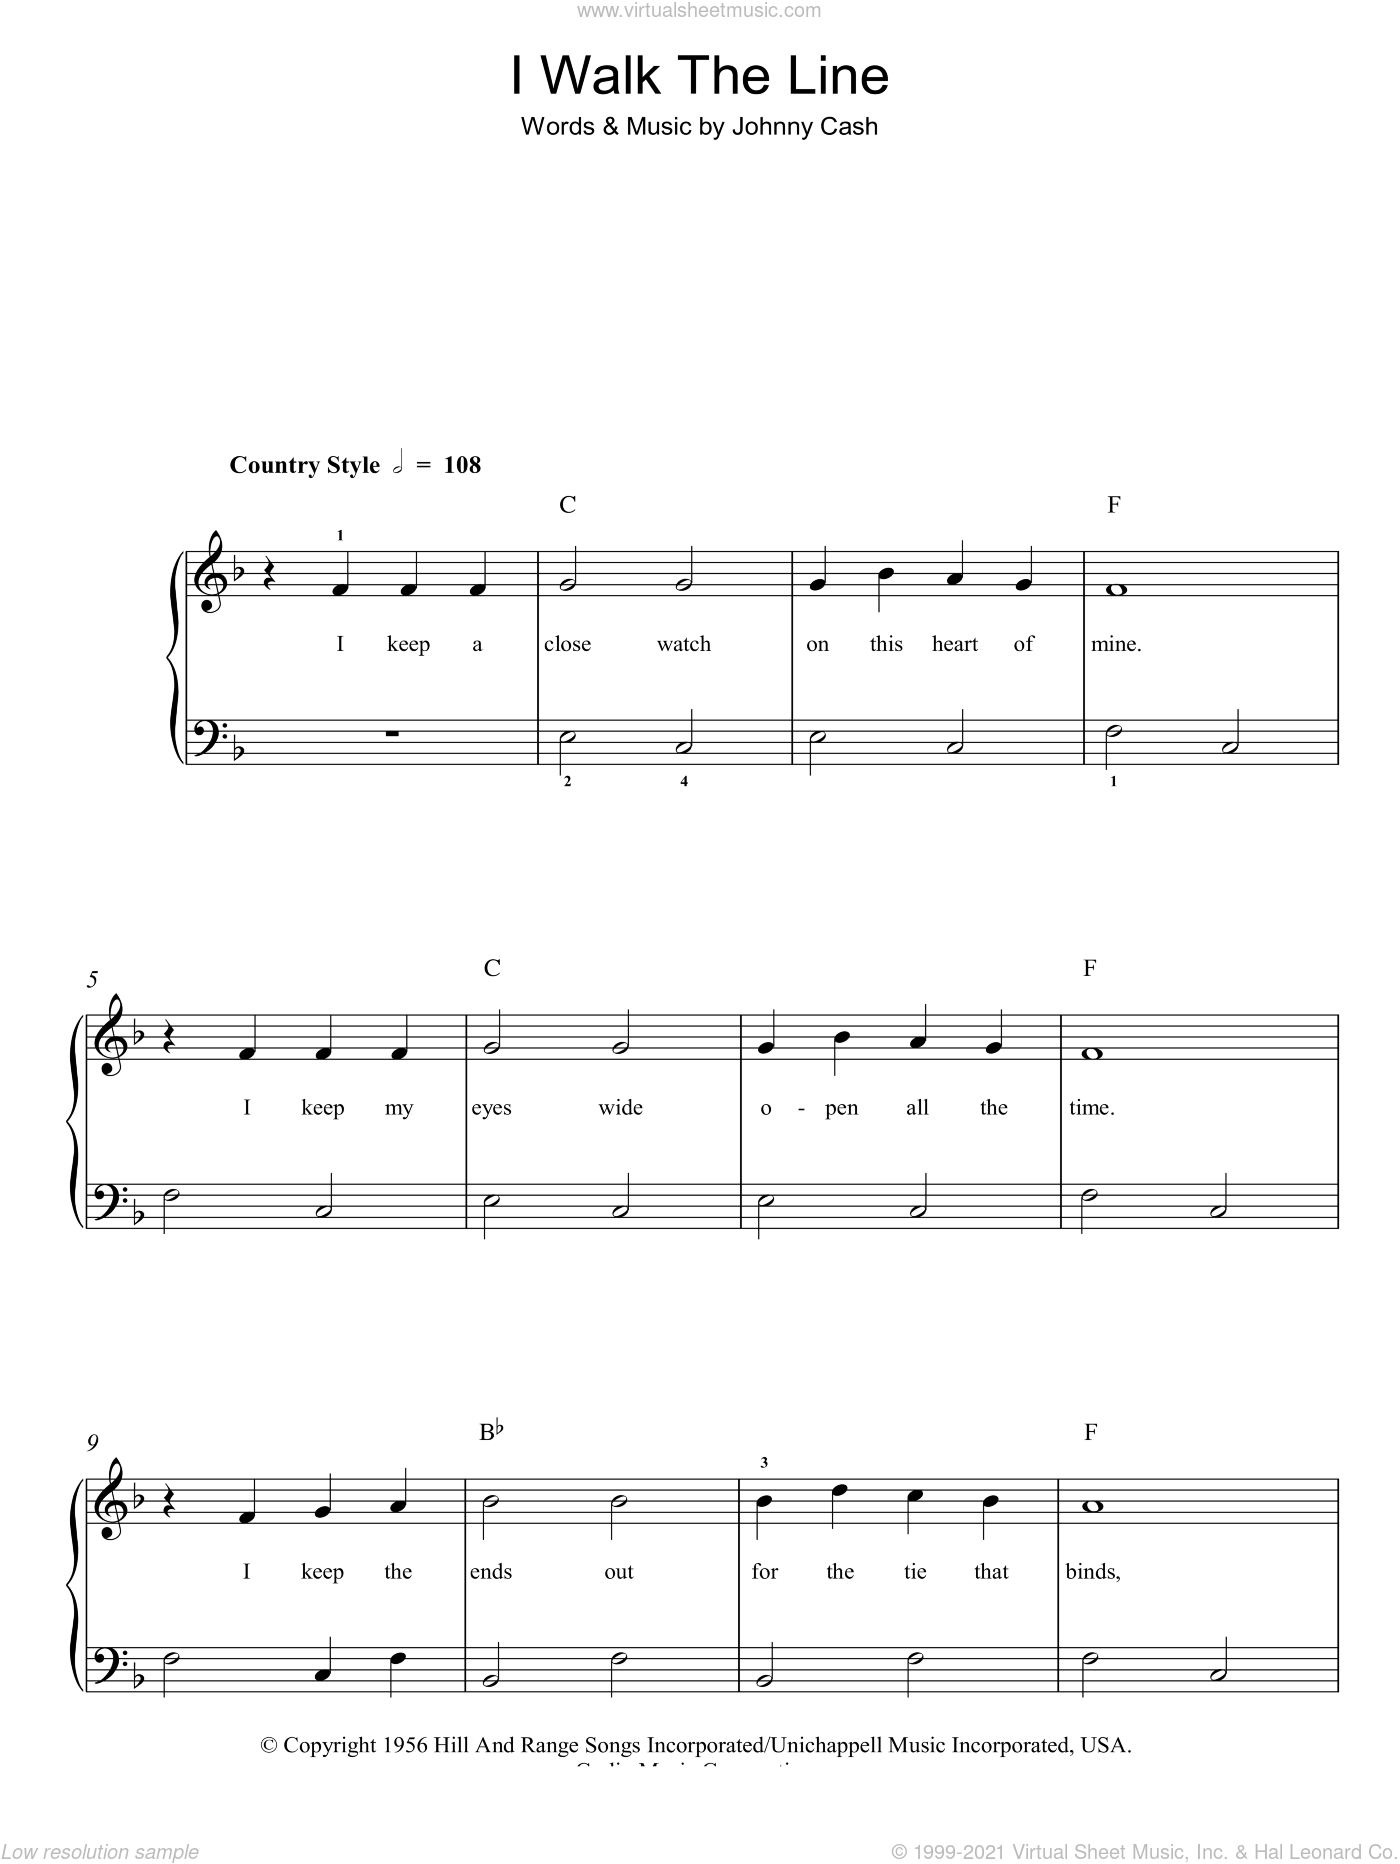 I Walk The Line sheet music for piano solo by Johnny Cash. Score Image Preview.